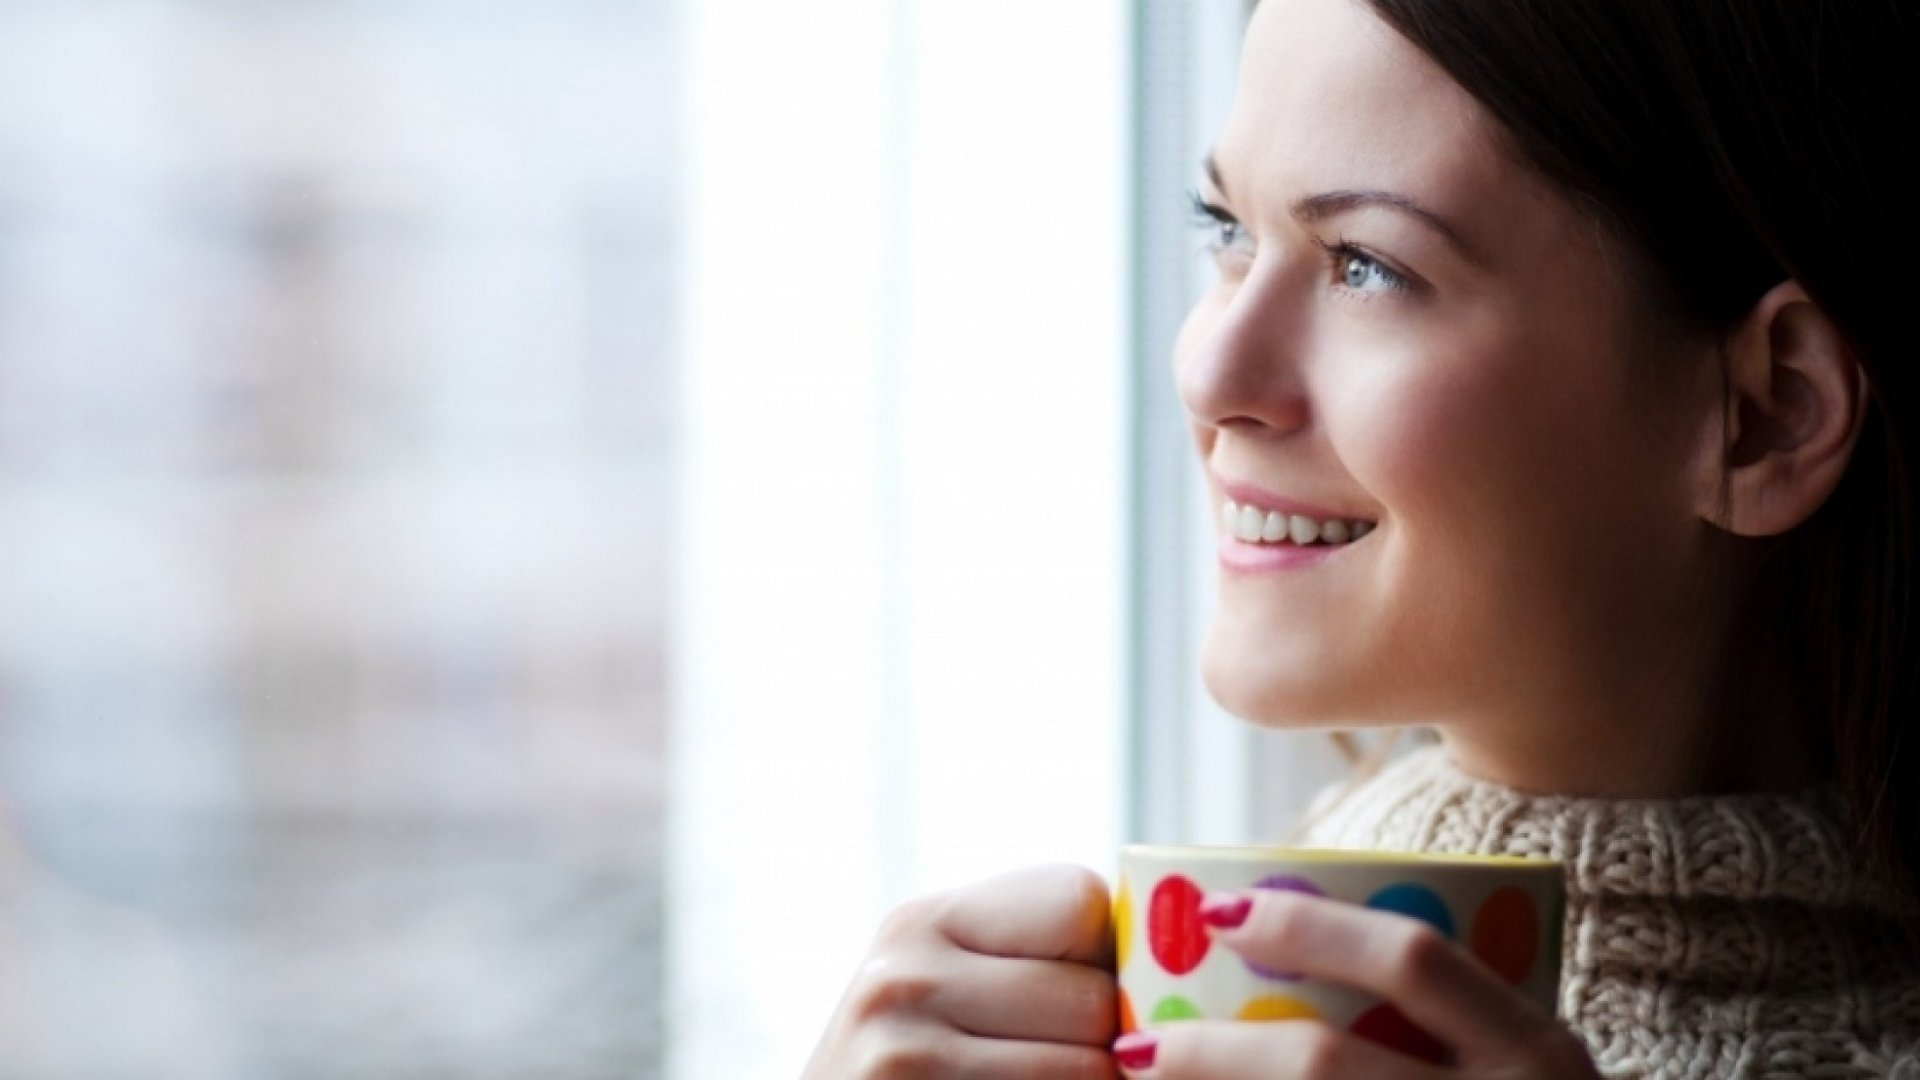 7 Phrases That Will Make Your Day More Positive and Productive